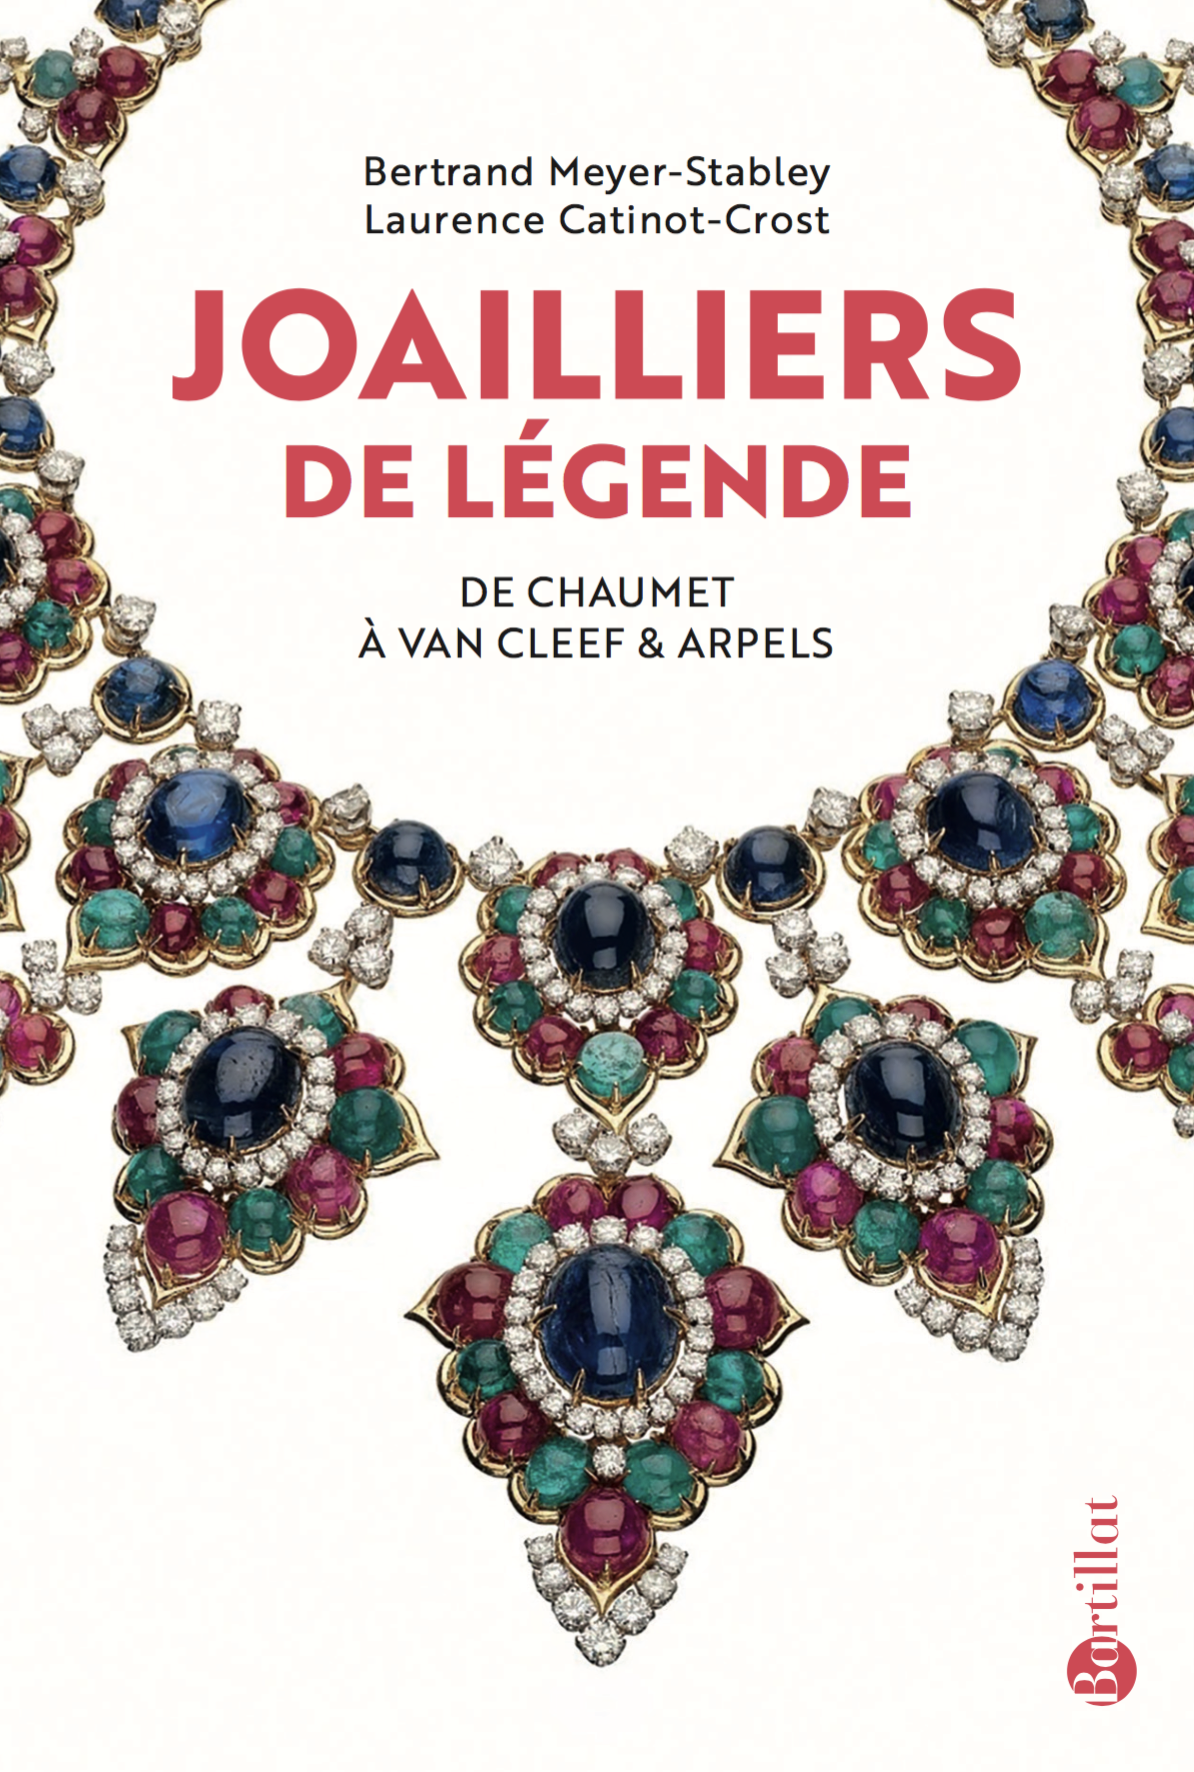 Couverture Joailliers de légende - Laurence Catinot-Crost Bertrand Meyer-Stabley